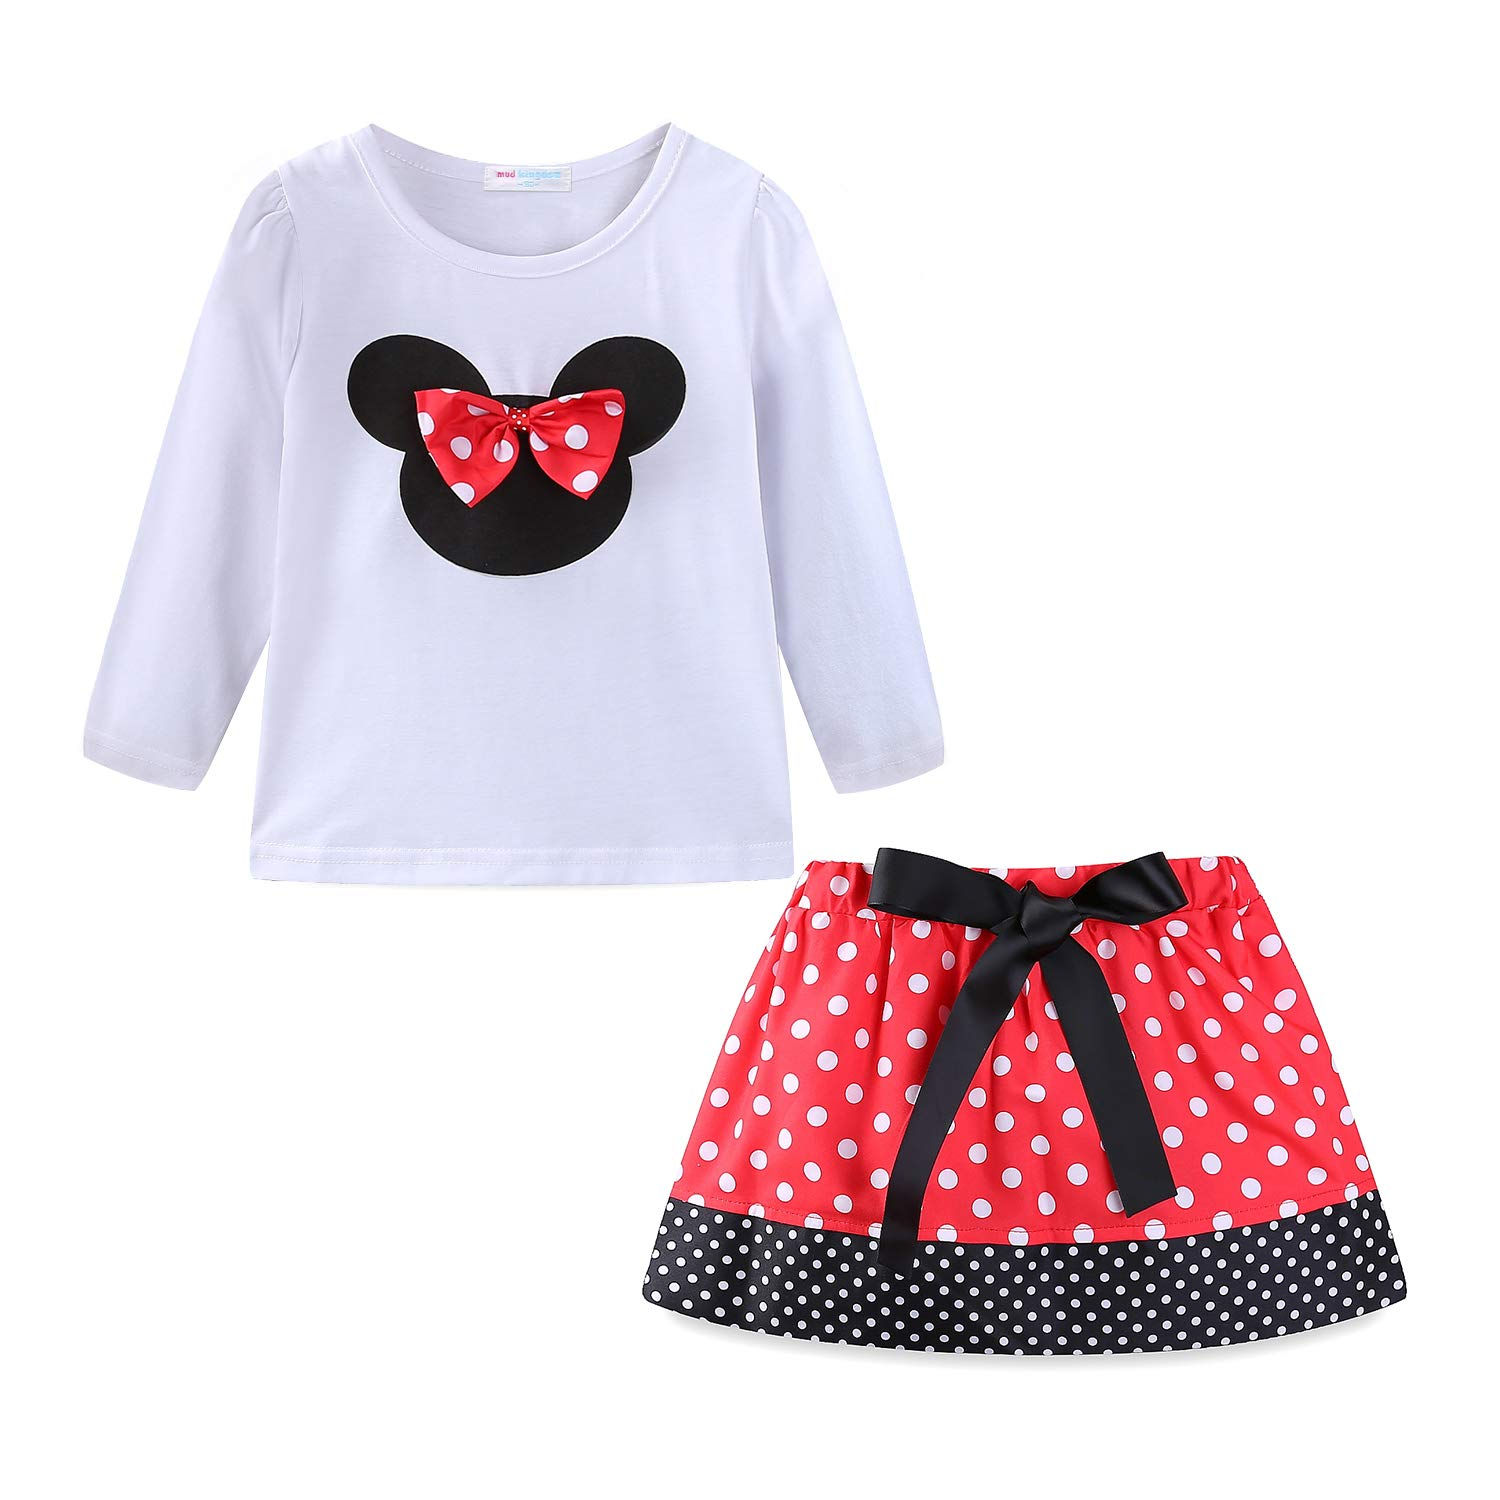 Mud Kingdom Little Girls Clothes Sets Cute Outfits Polka Dot Z-T0224